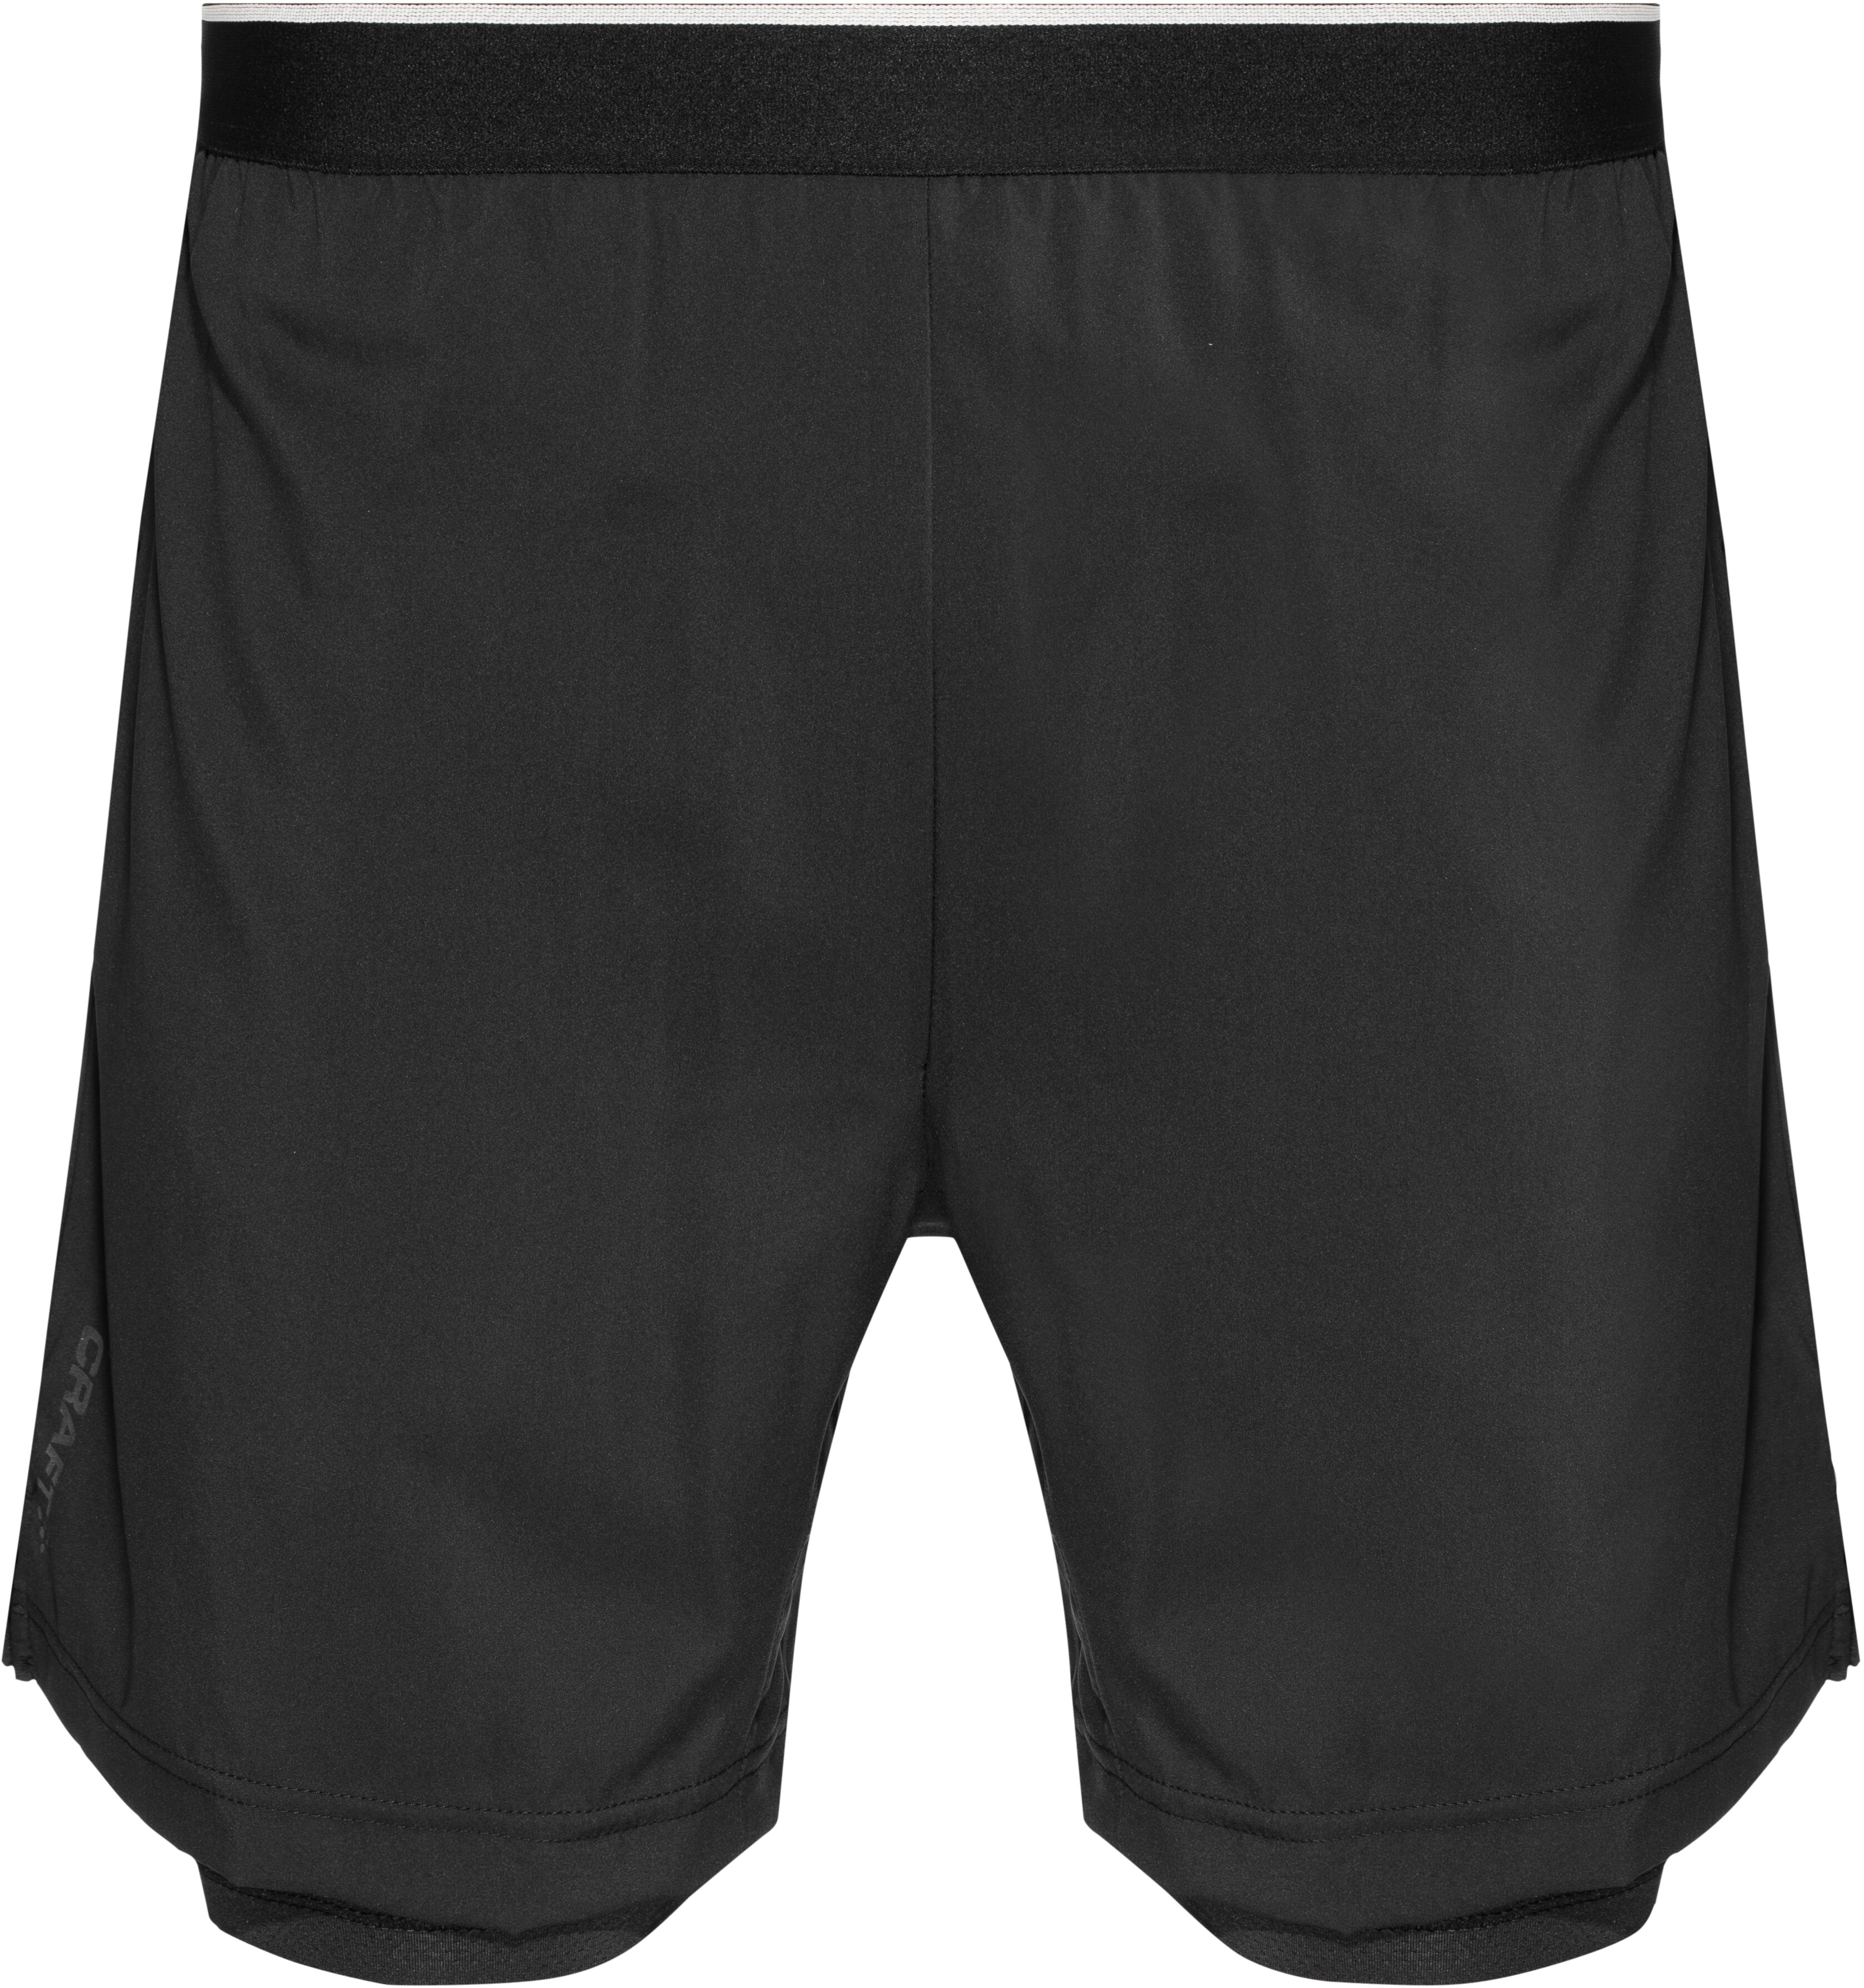 f64a2a6d Craft M's Charge 2-In-1 Shorts black - addnature.com